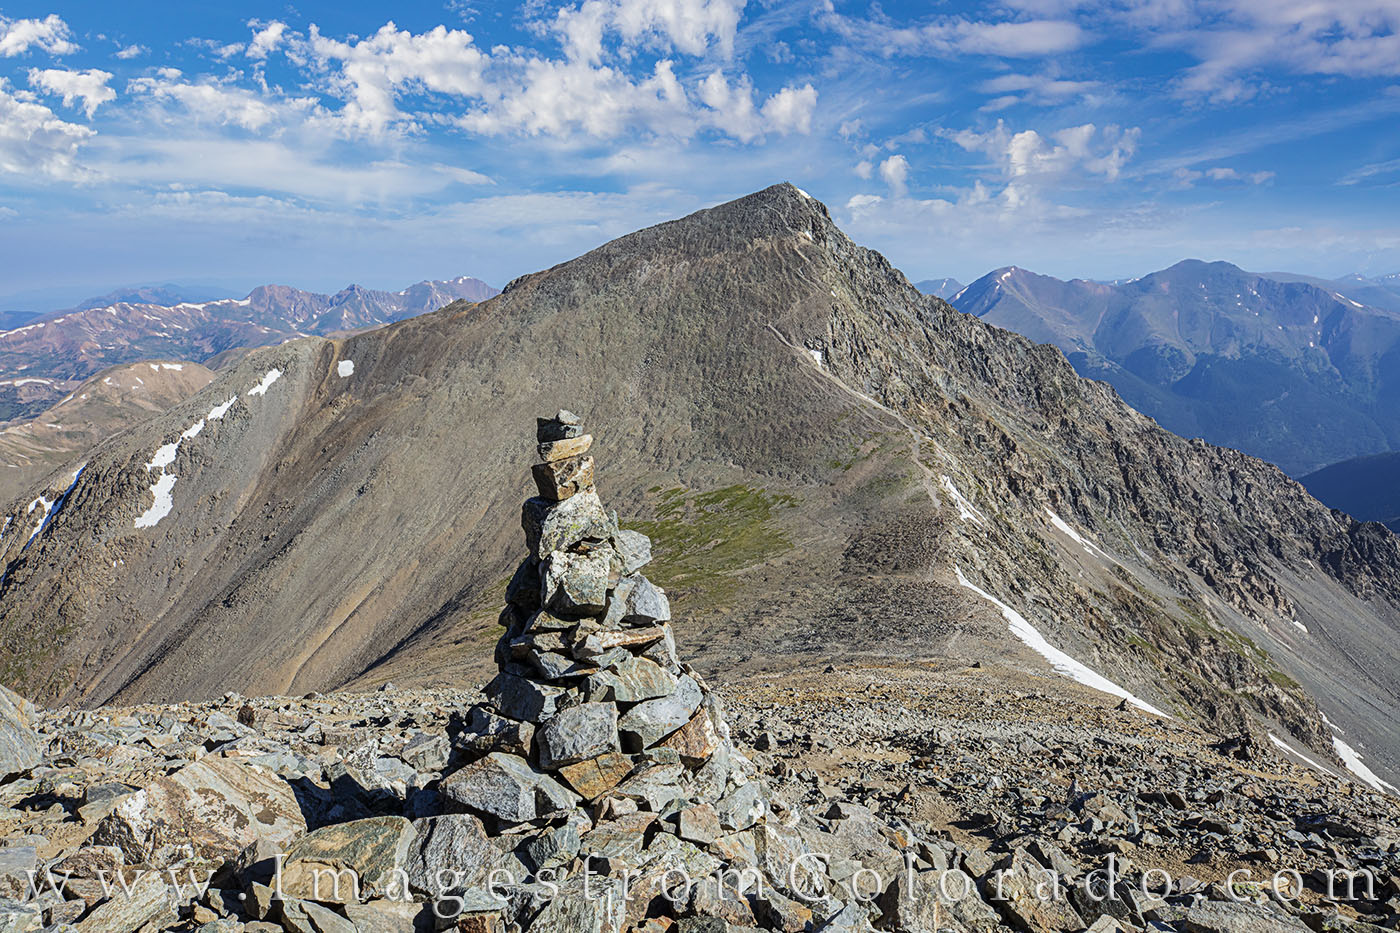 A cairn marks the path down from Grays Peak (14,270') to the saddle and back up to Torreys Peak (14,267'). The skies were...